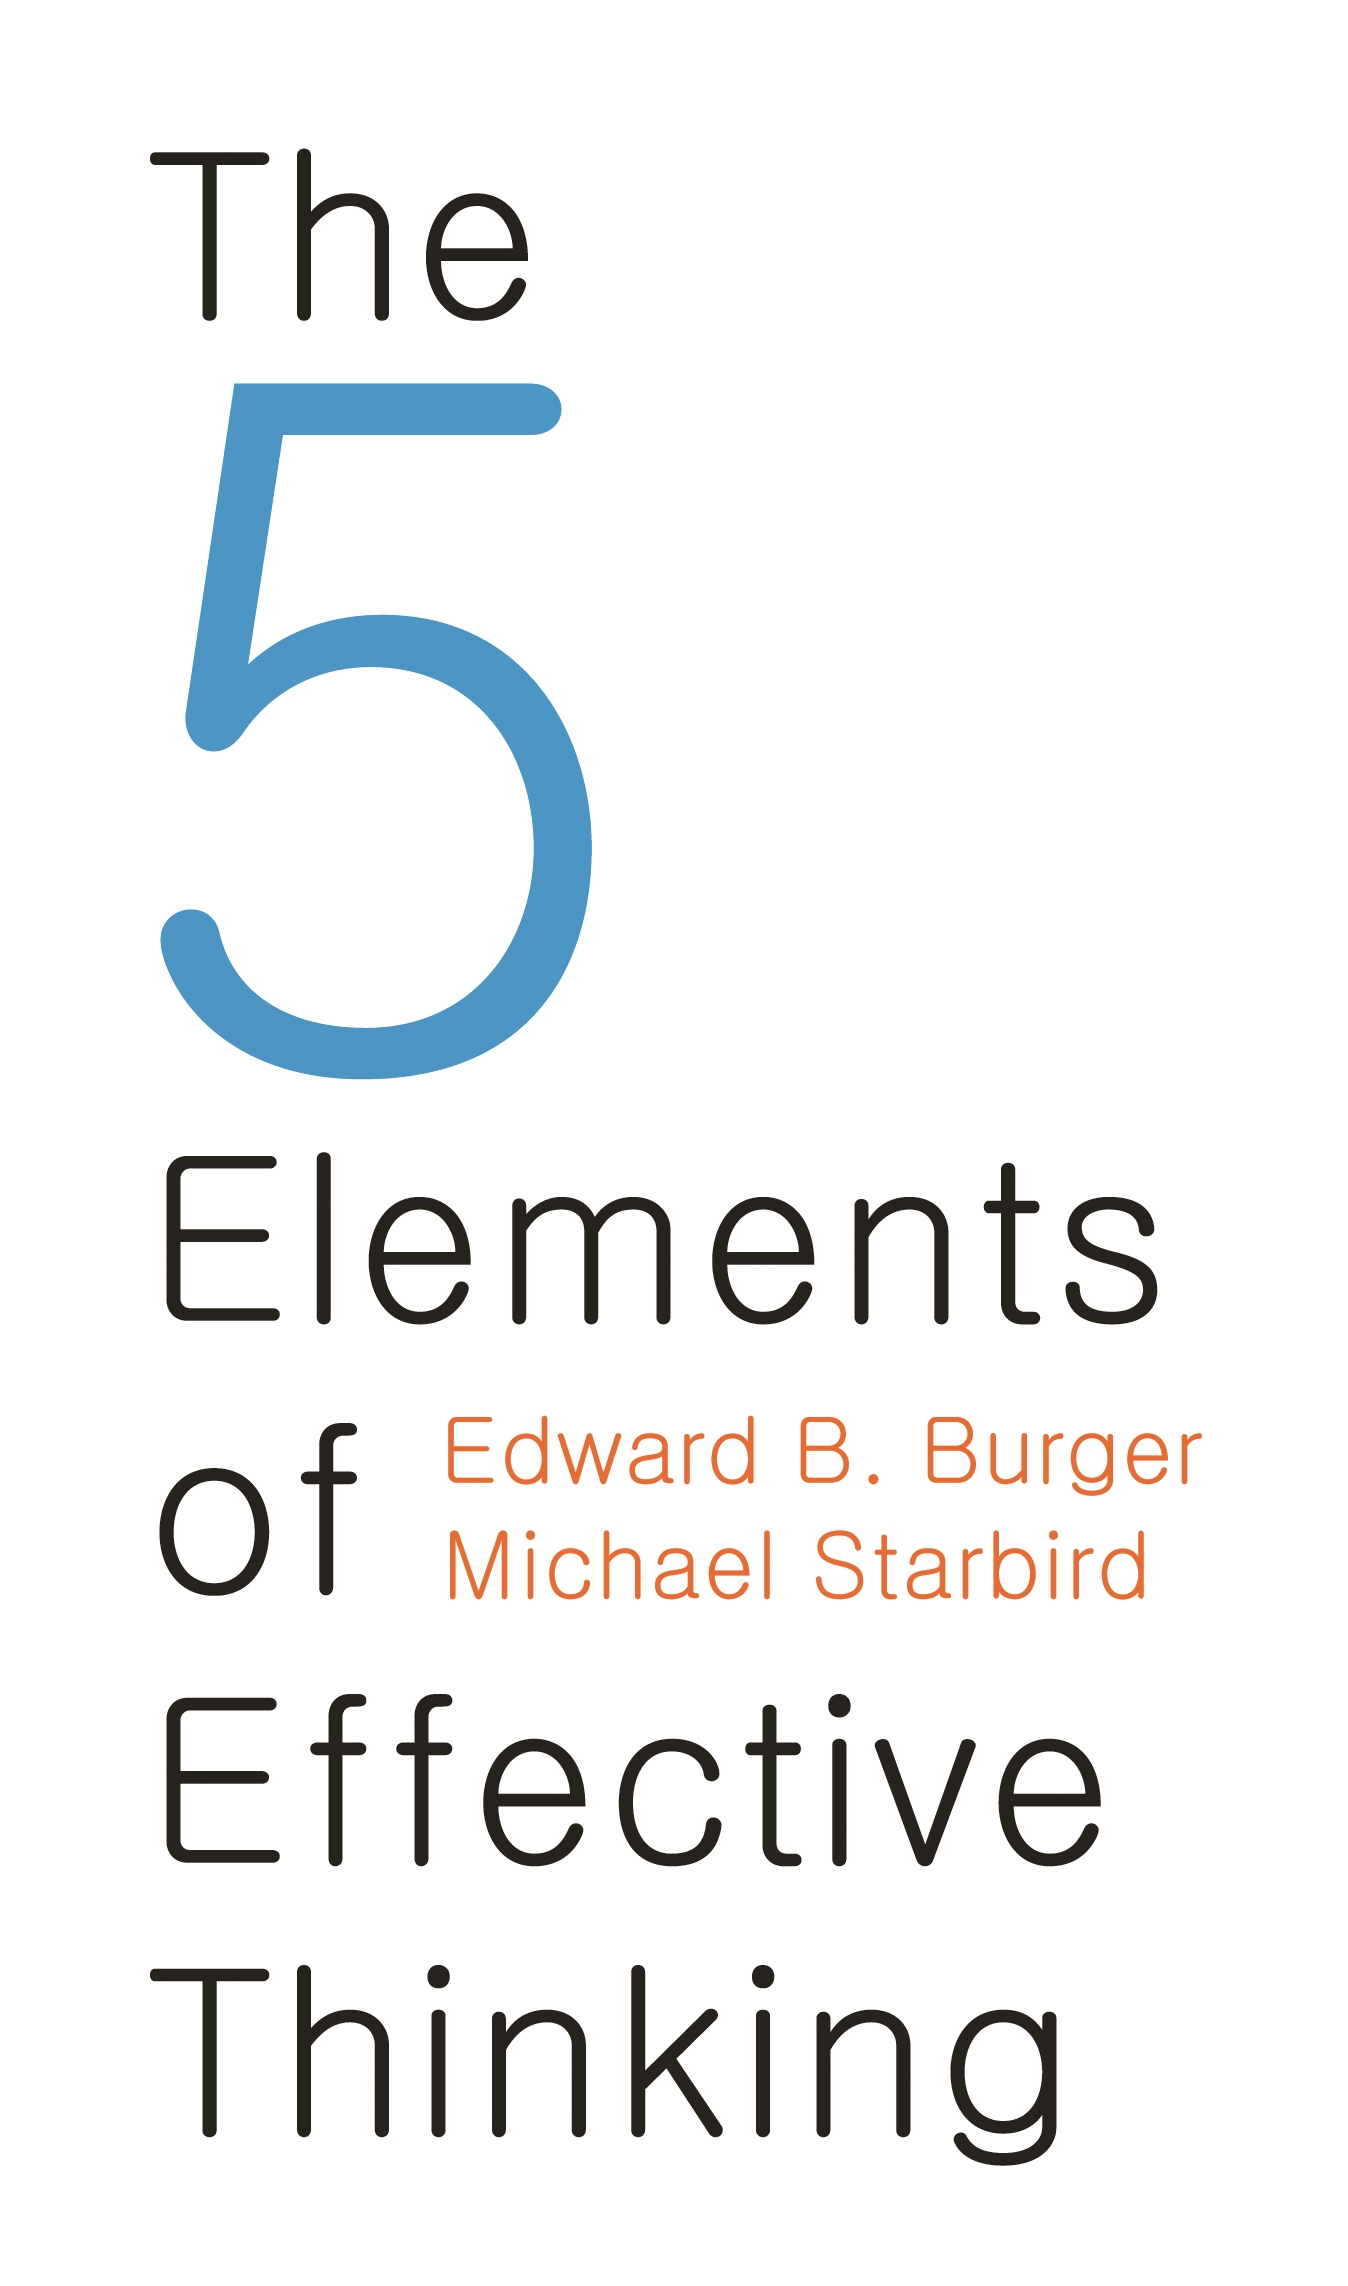 the 5 elements of effective thinking pdf free download